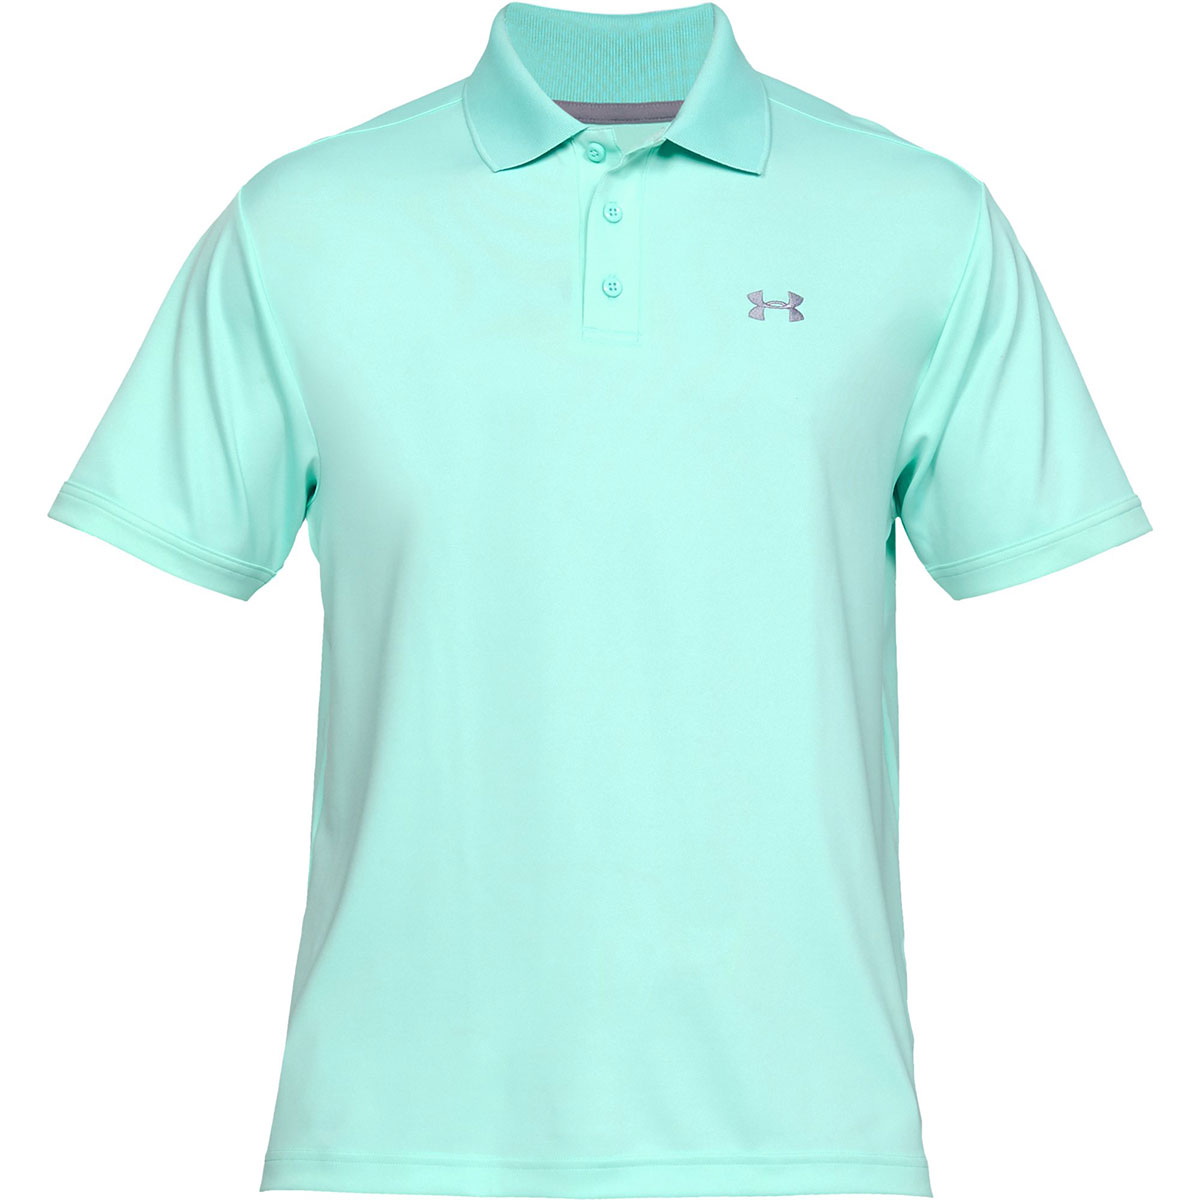 9180e815 Under Armour Performance Polo Shirt from american golf